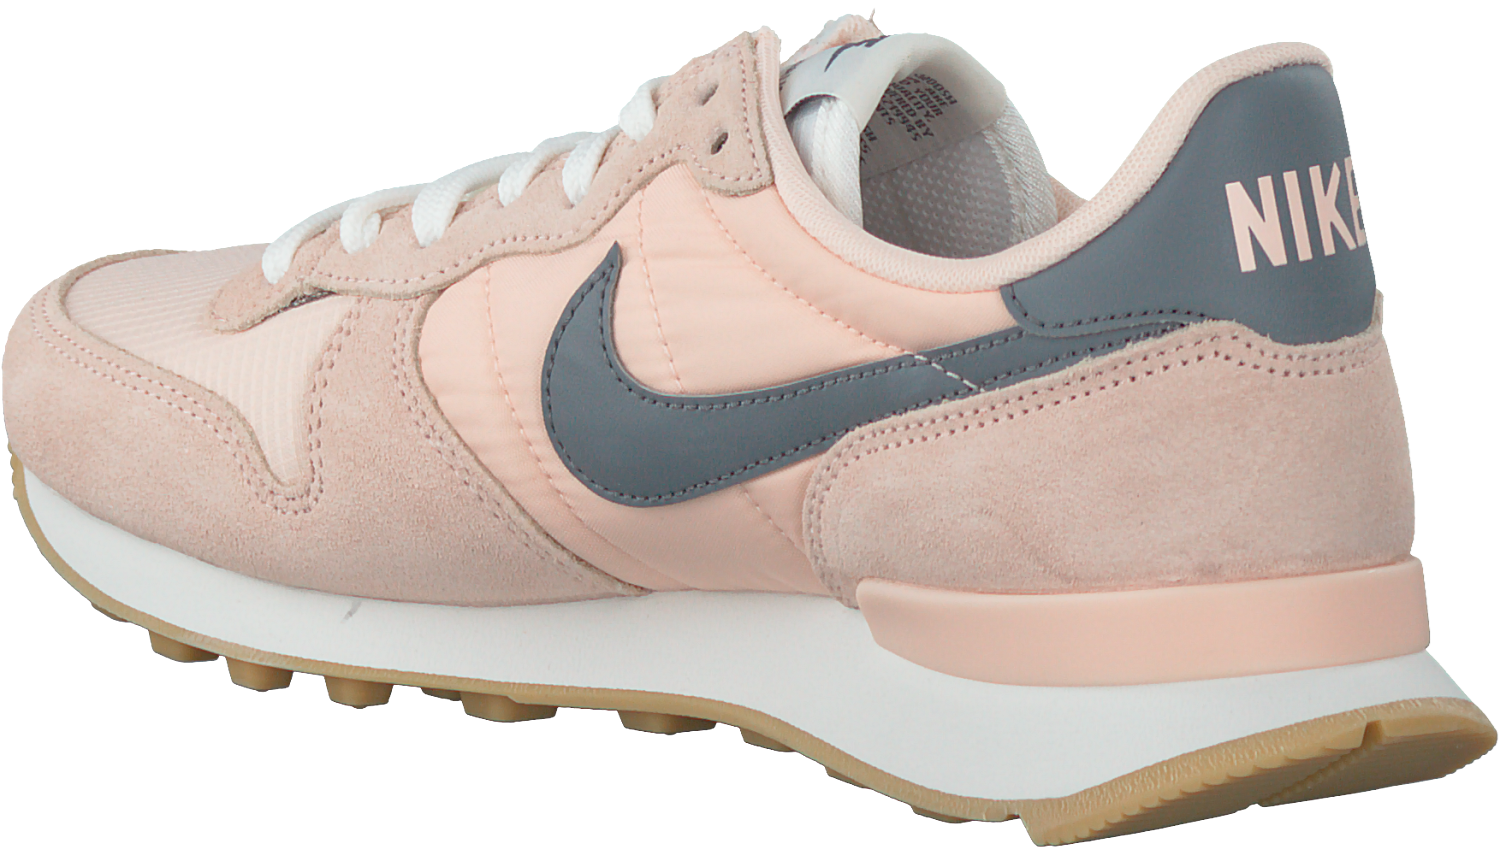 344af5c451f Roze NIKE Sneakers INTERNATIONALIST WMNS. NIKE. -50%. Previous